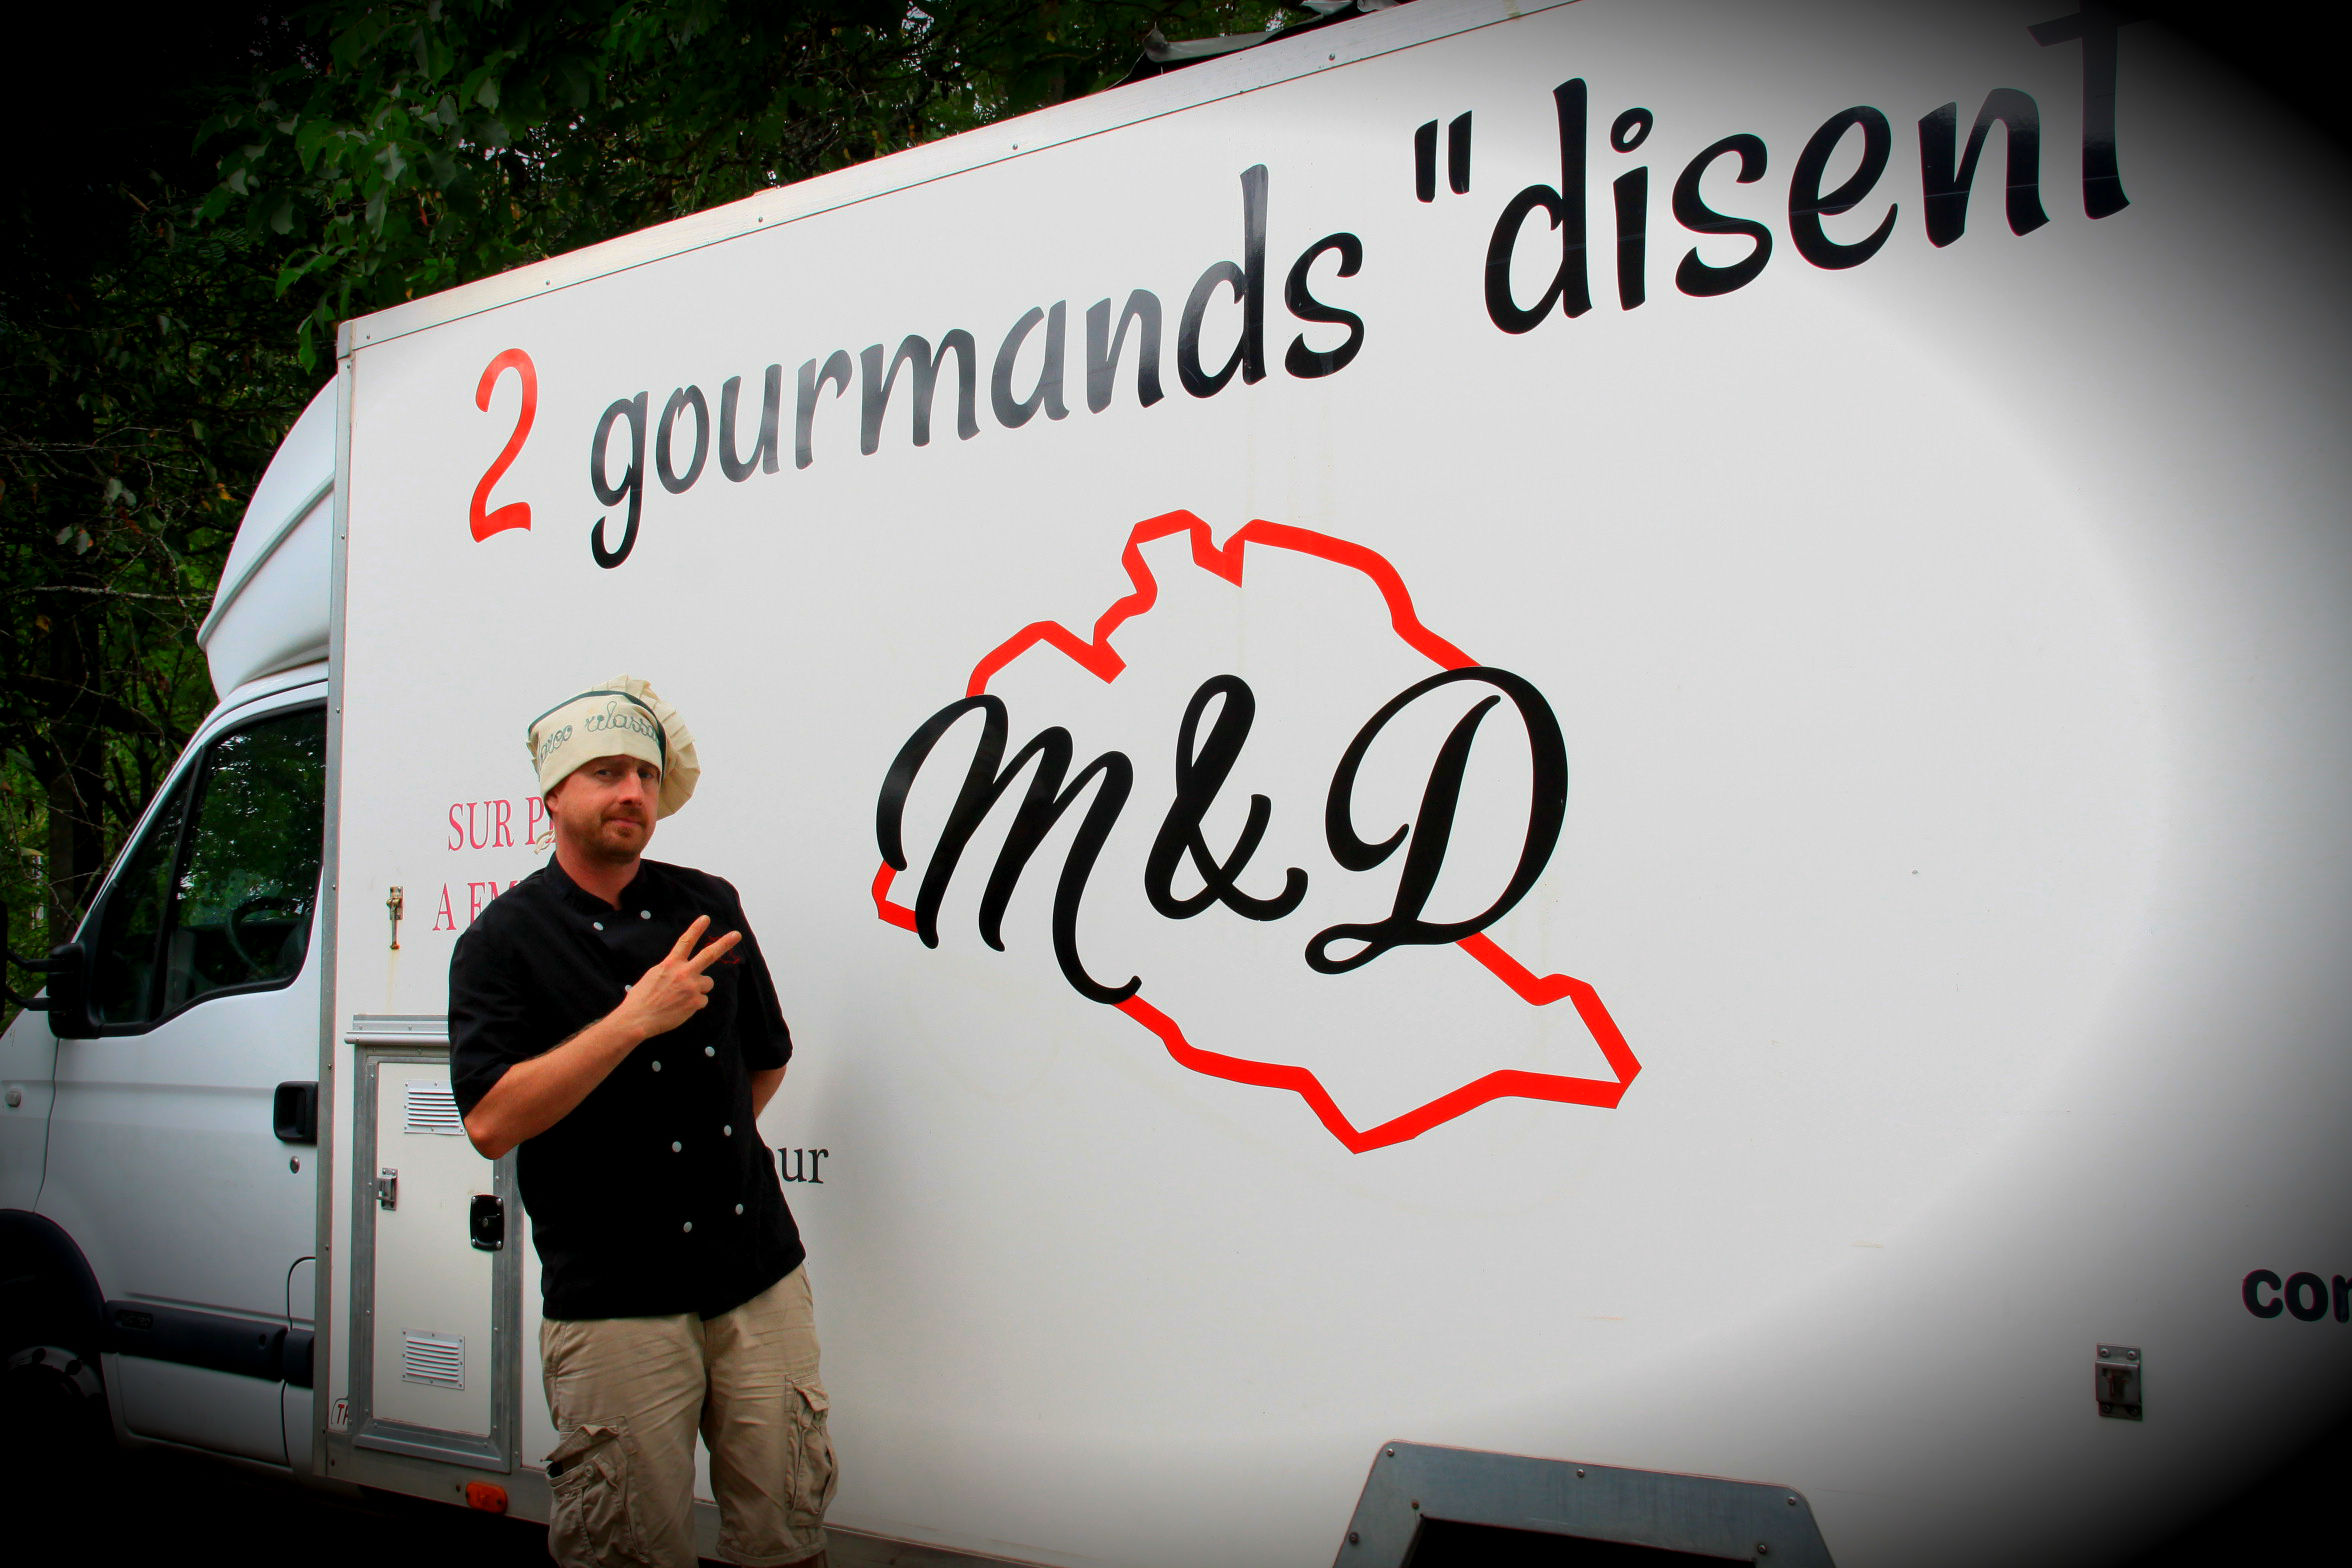 food truck les 2 gourmands disent